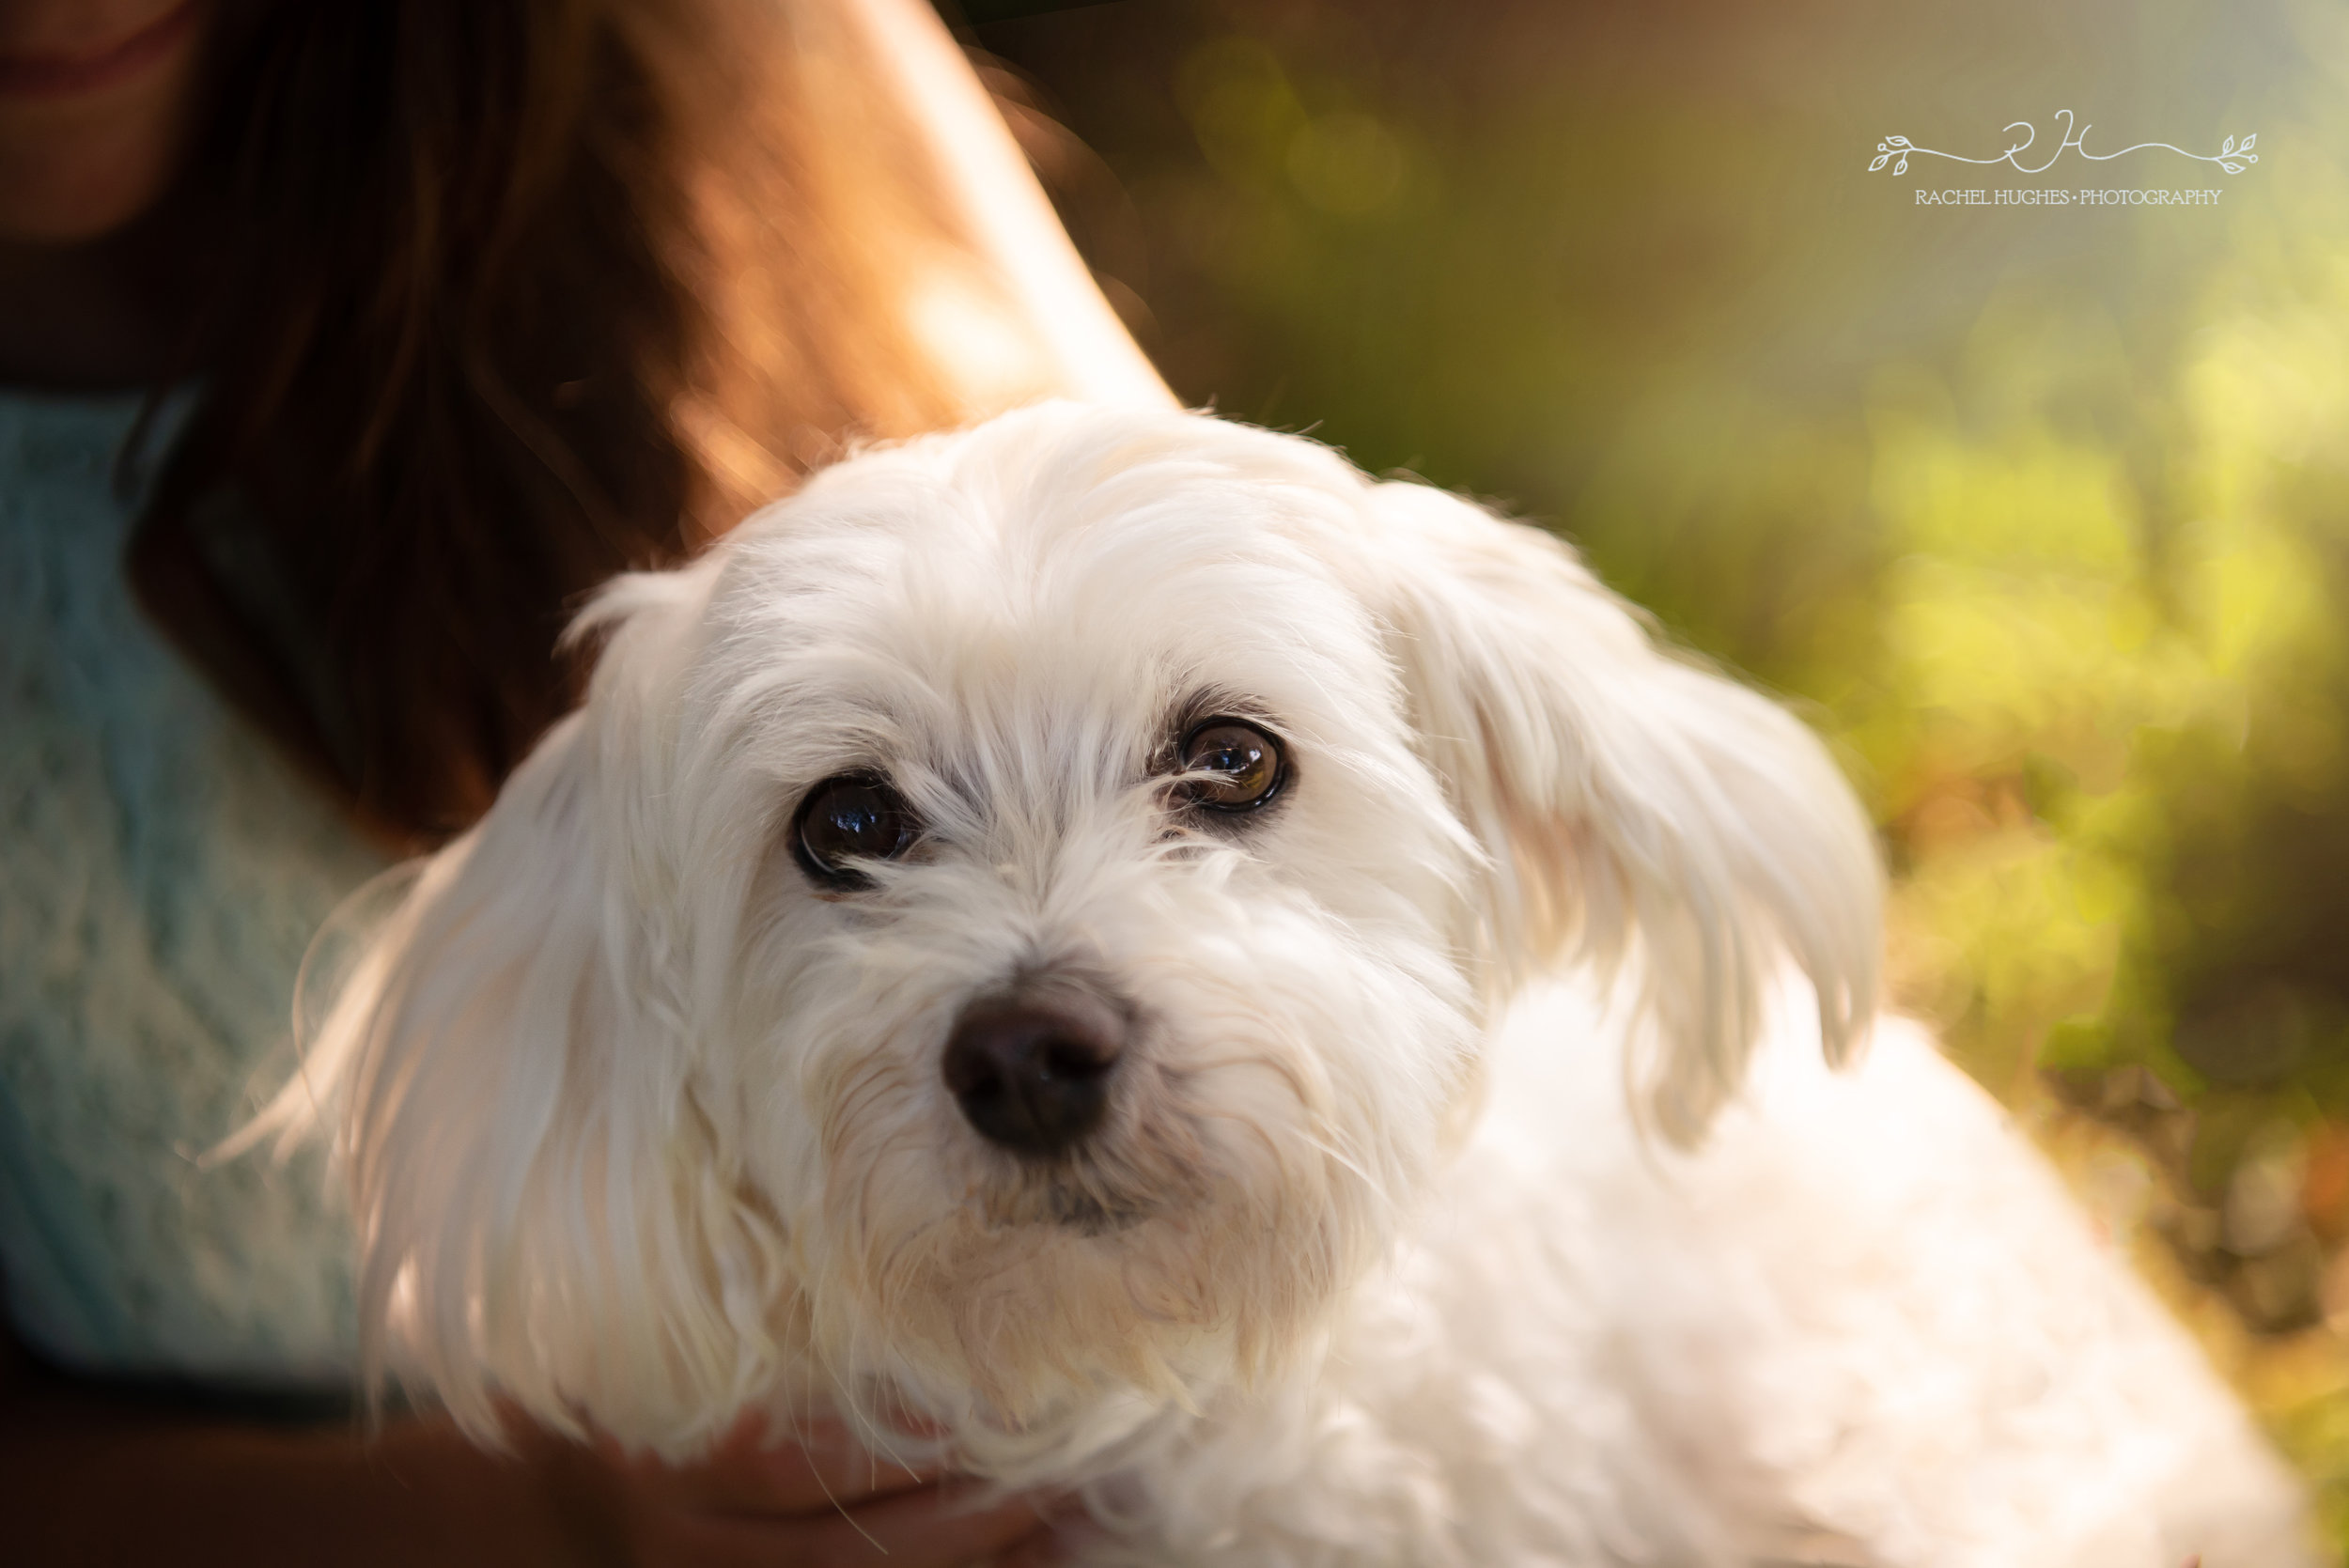 Jersey photographer - rescue dog portrait